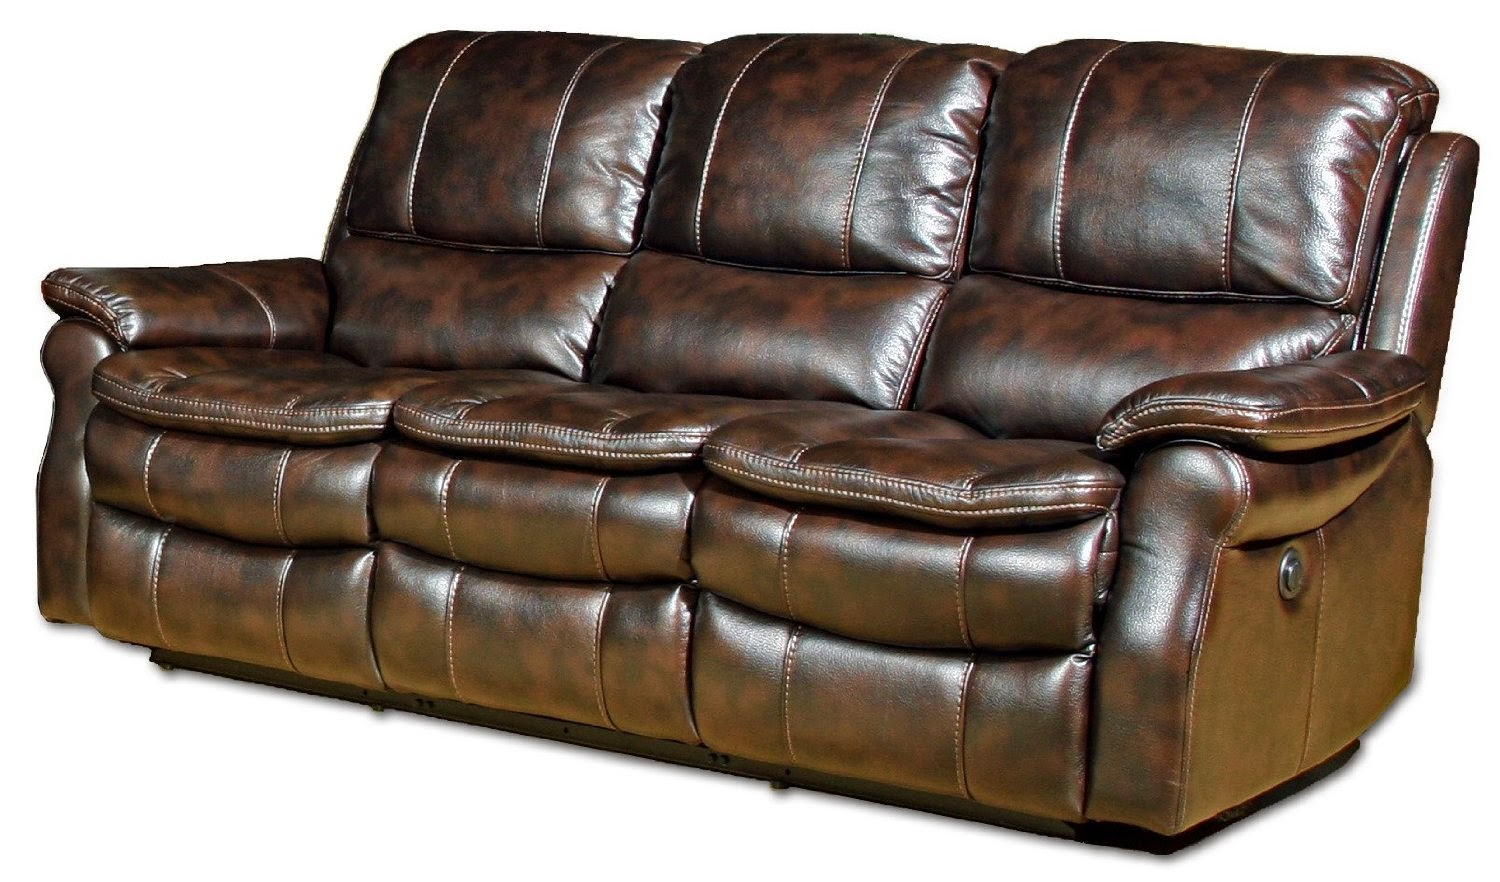 Deacon Leather Power Reclining Sofa Reviews Crate And Barrel Sleeper Slipcover Sets Gradschoolfairs